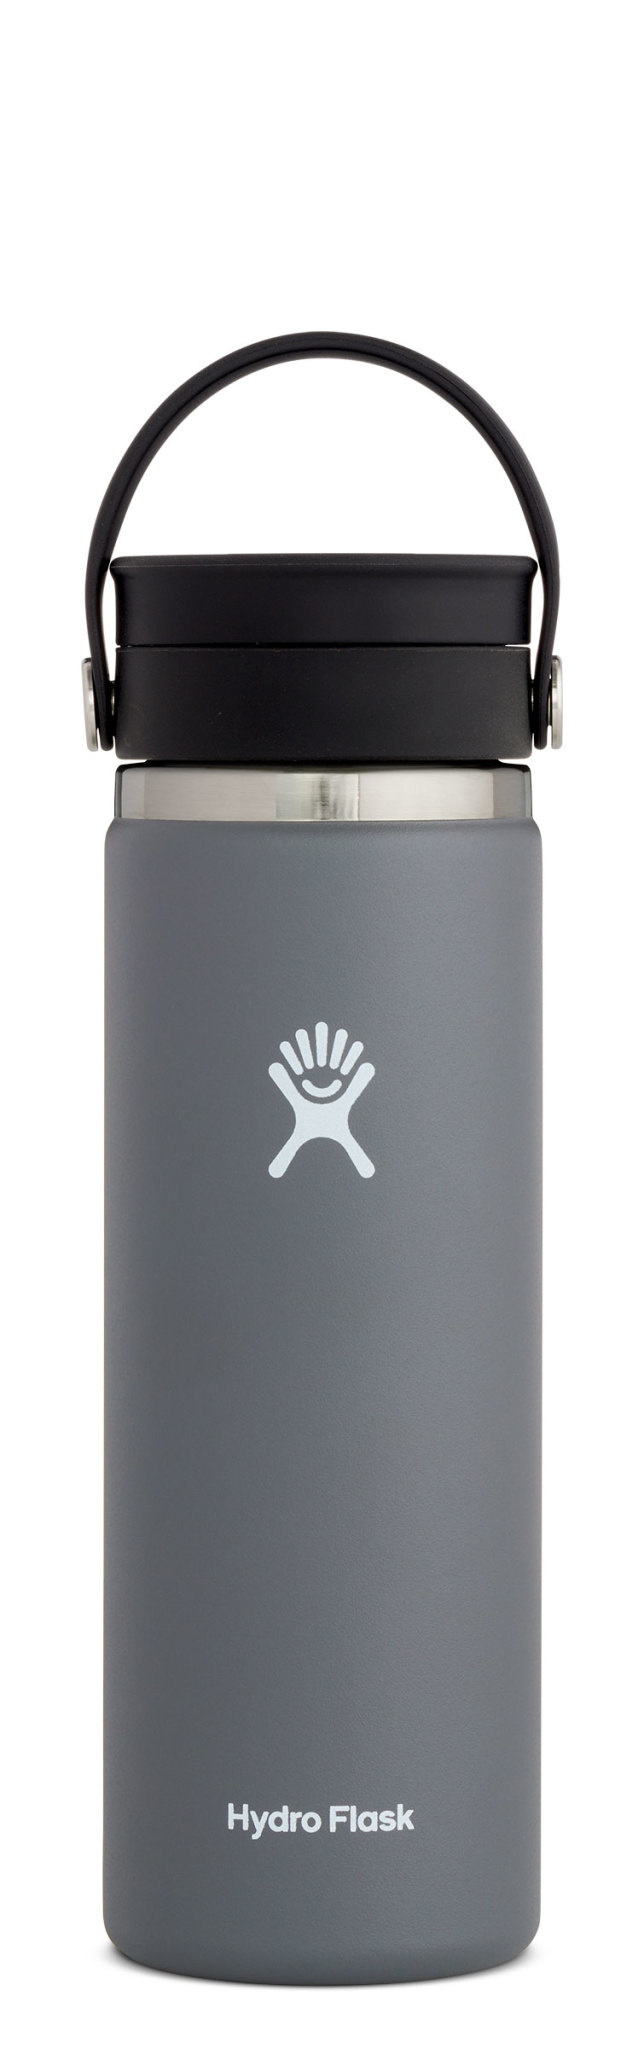 Hydro Flask 20oz Wide Mouth with Flex Sip Lid-7